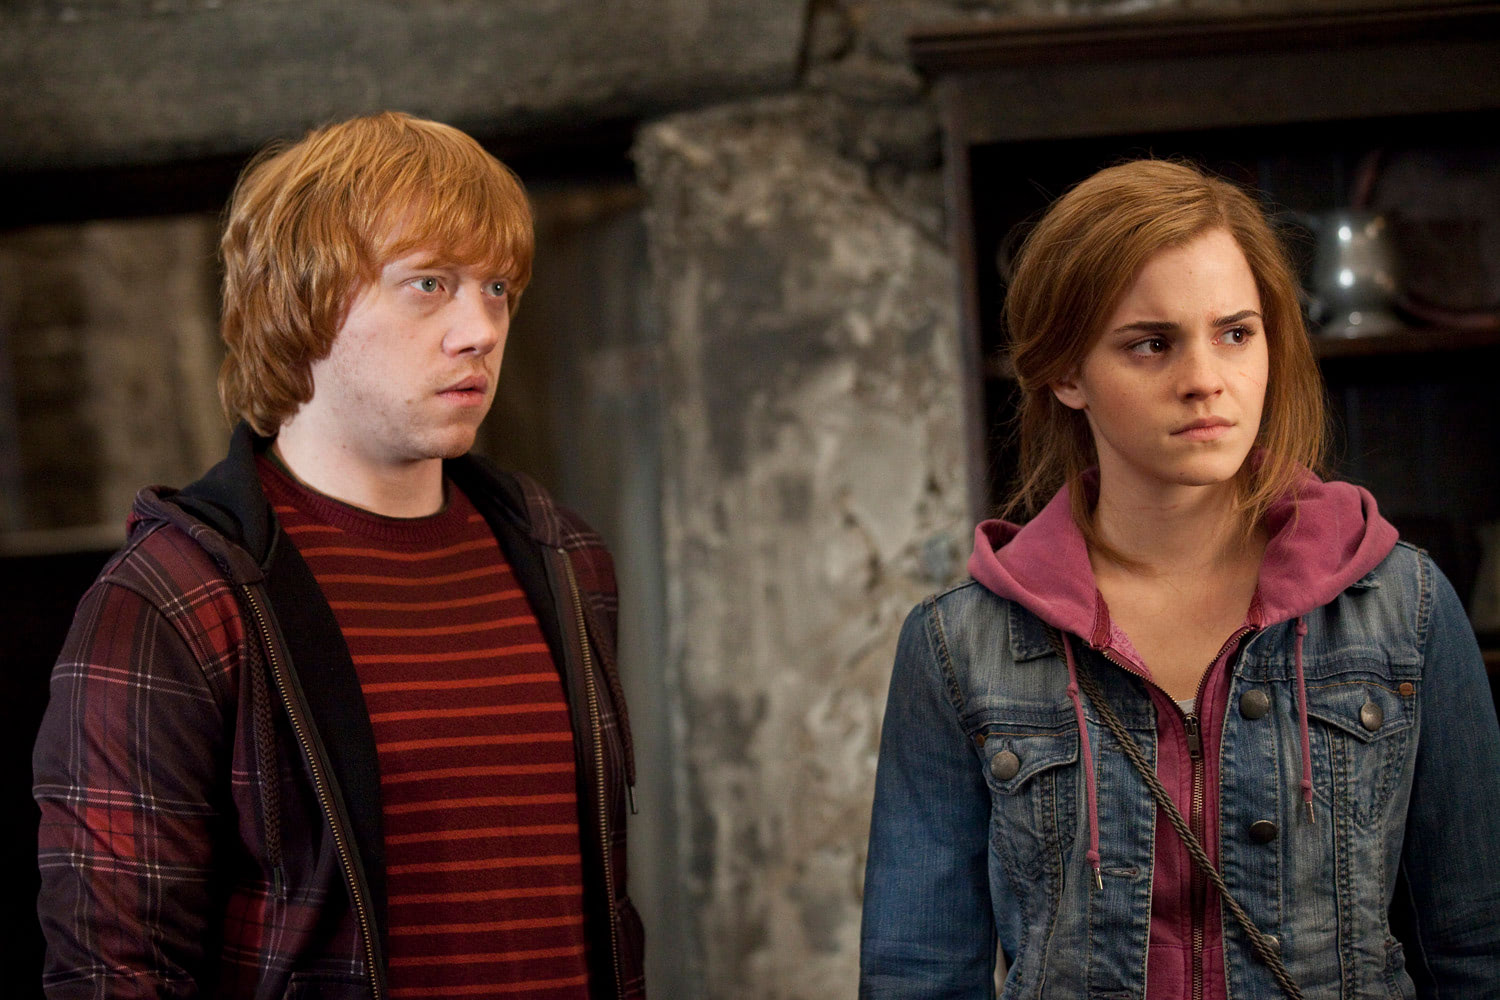 Ron and Hermione in the Hog's Head